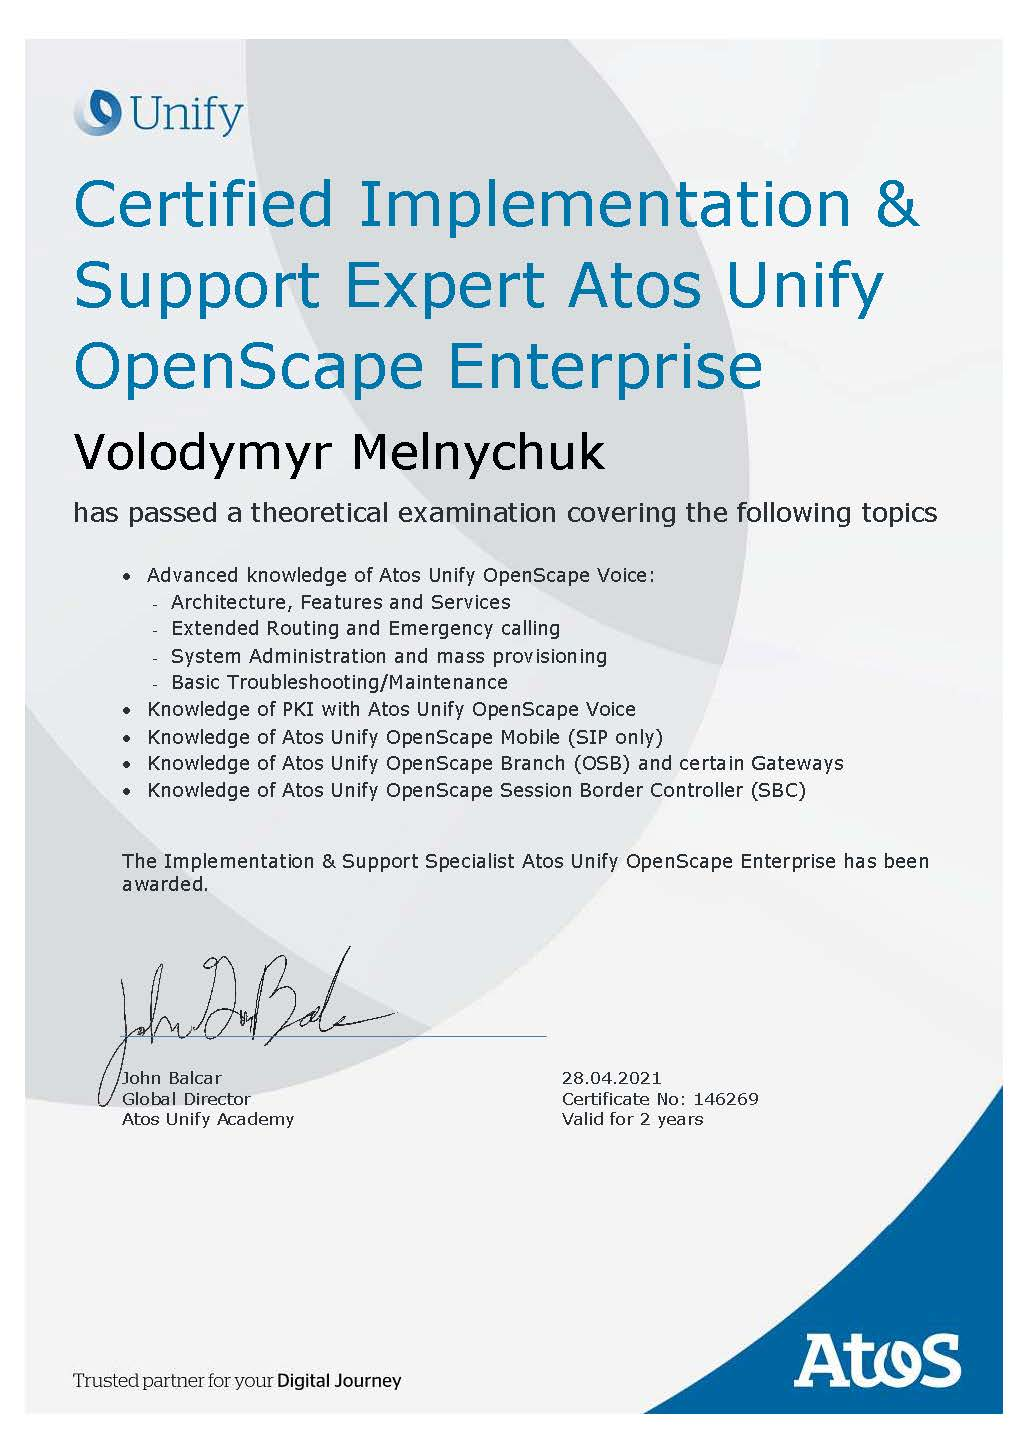 certificate_Implementation_Support_Expert_Atos_Unify_OpenScape_Enterprise